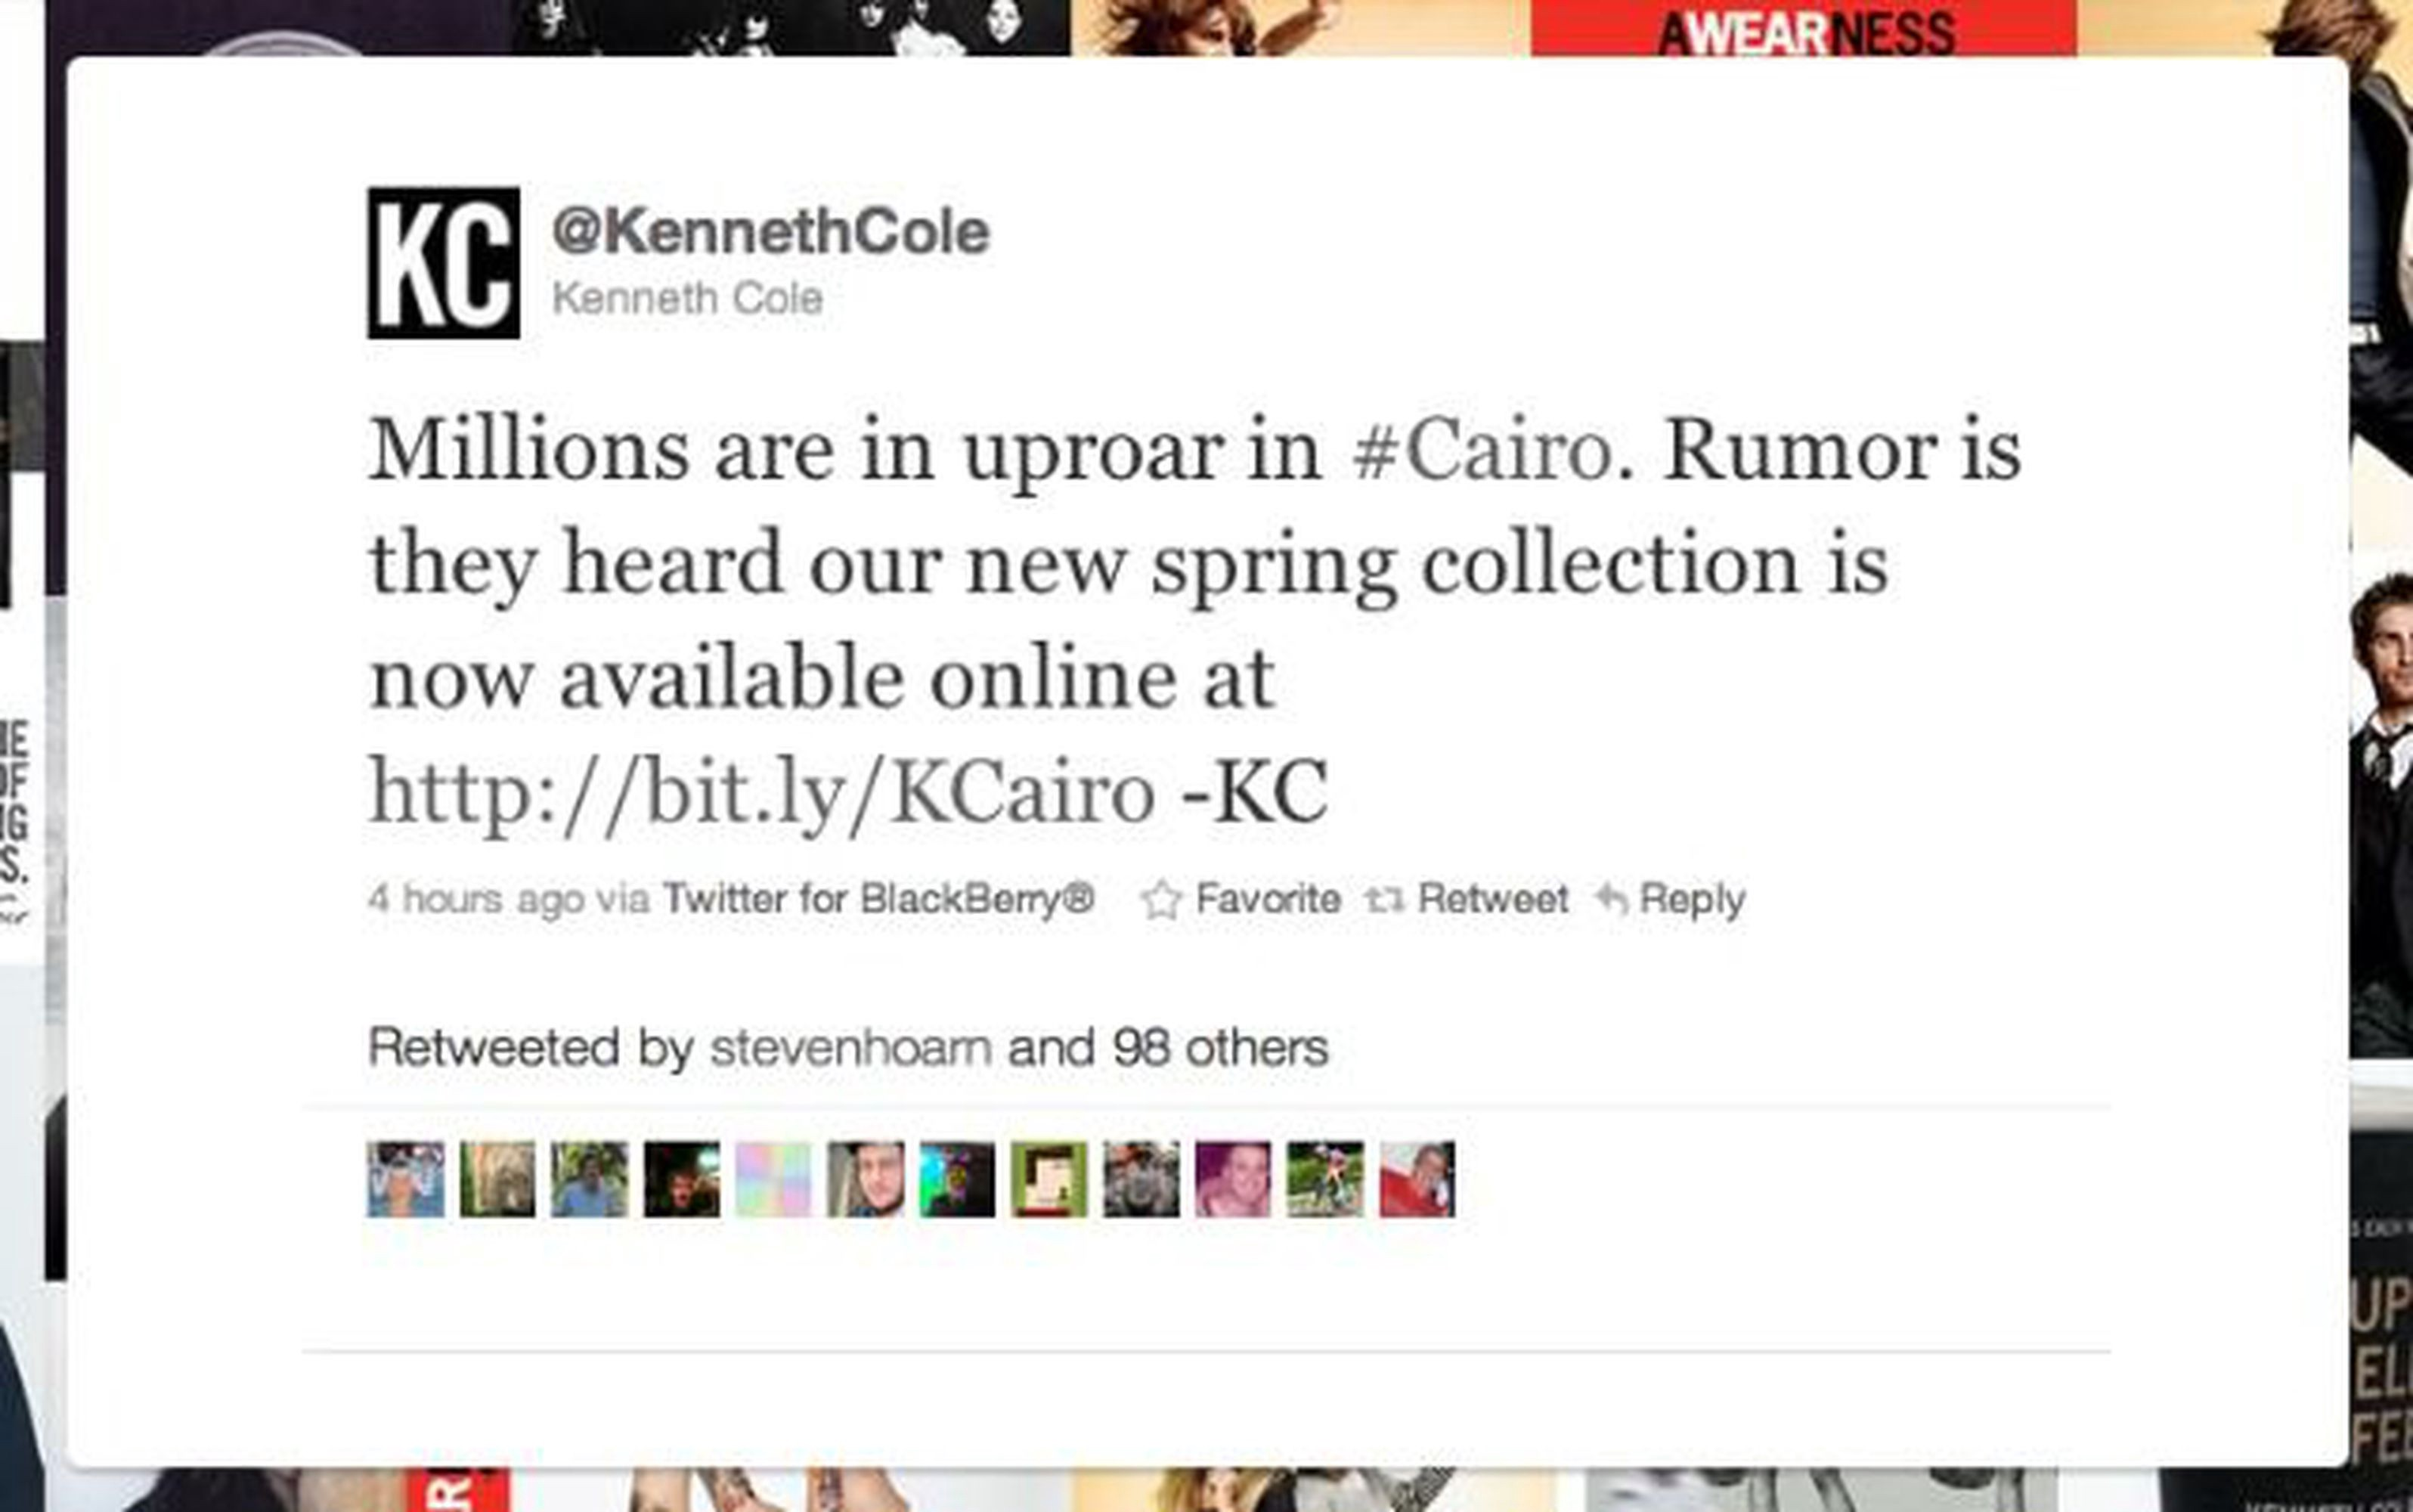 Screenshot of insensitive Kenneth Cole tweet